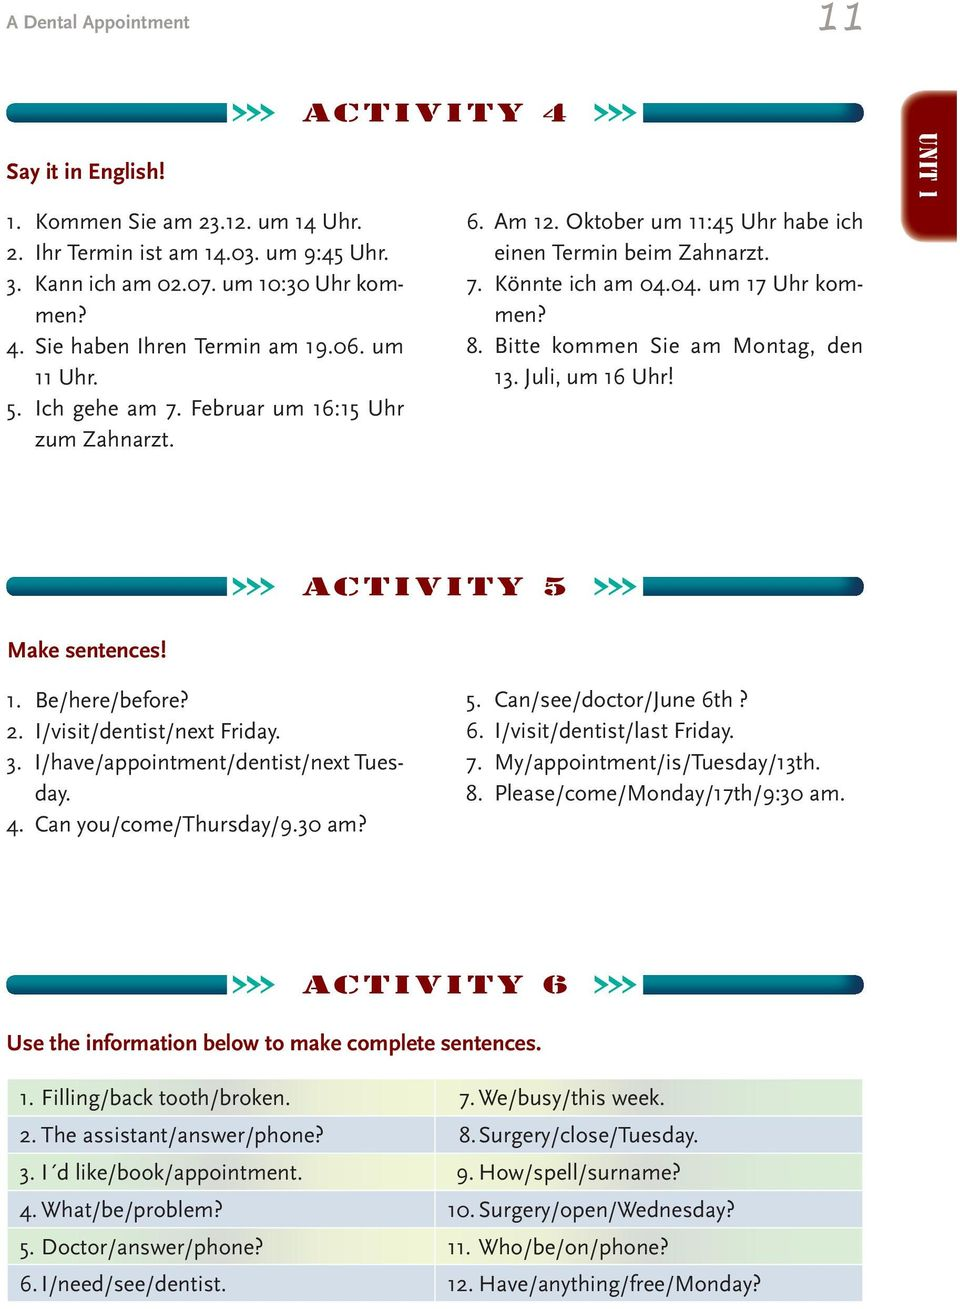 Bitte kommen Sie am Montag, den 13. Juli, um 16 Uhr! Unit 1 activity 5 Make sentences! 1. Be/here/before? 2. I/visit/dentist/next Friday. 3. I/have/appointment/dentist/next Tuesday. 4.